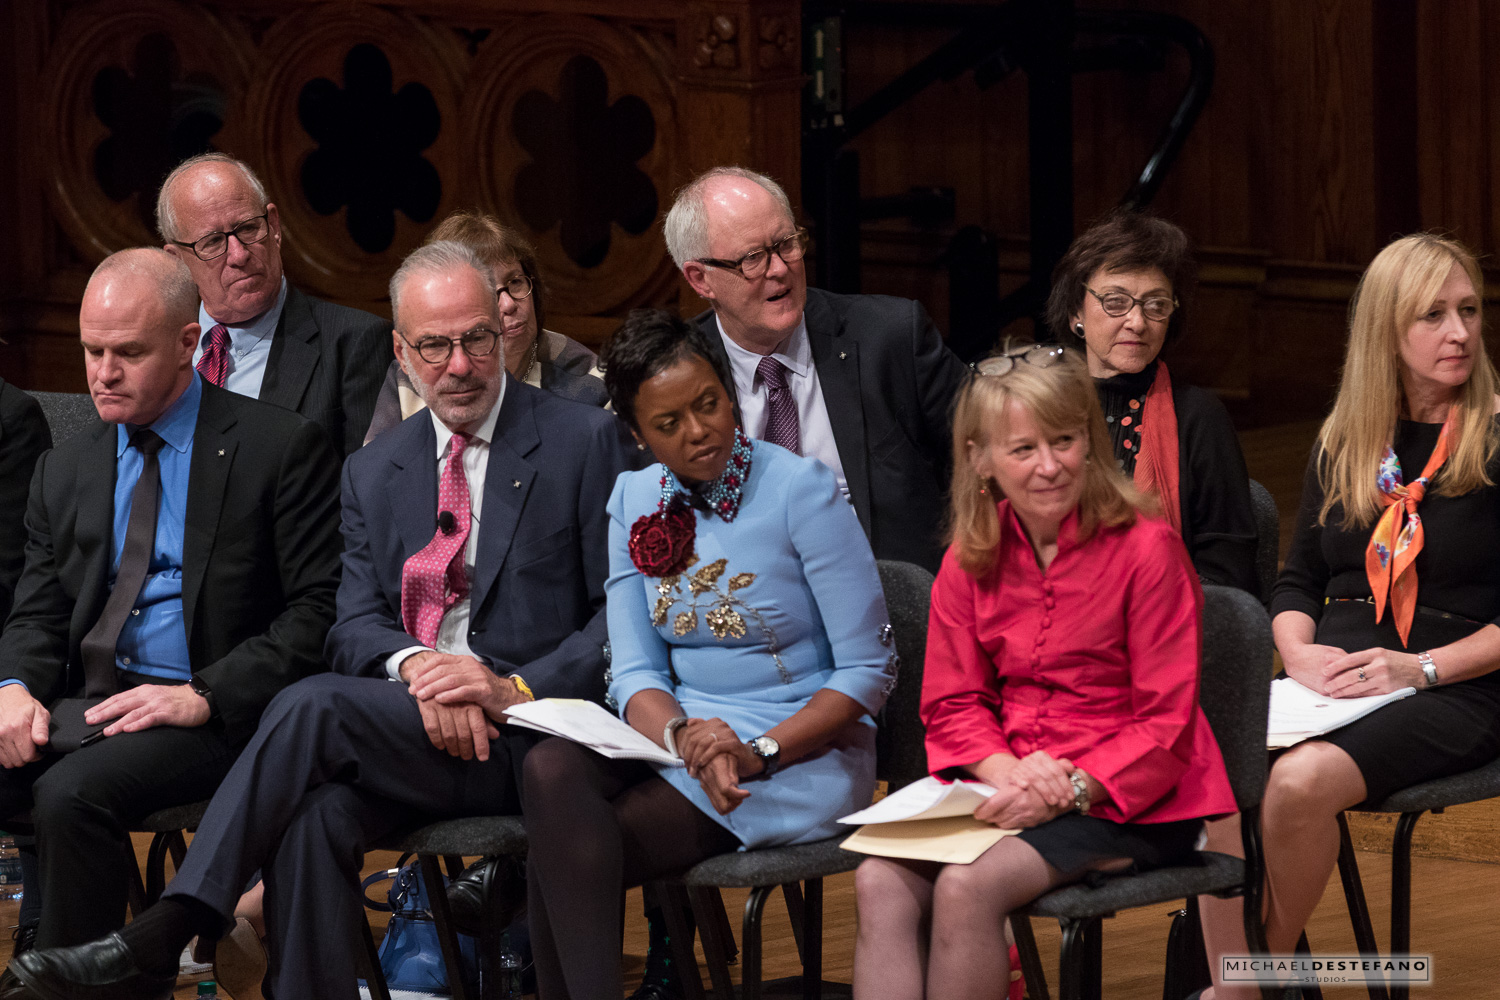 2016 Induction Ceremony - Archive of Images taken during 2016 Induction weekend.